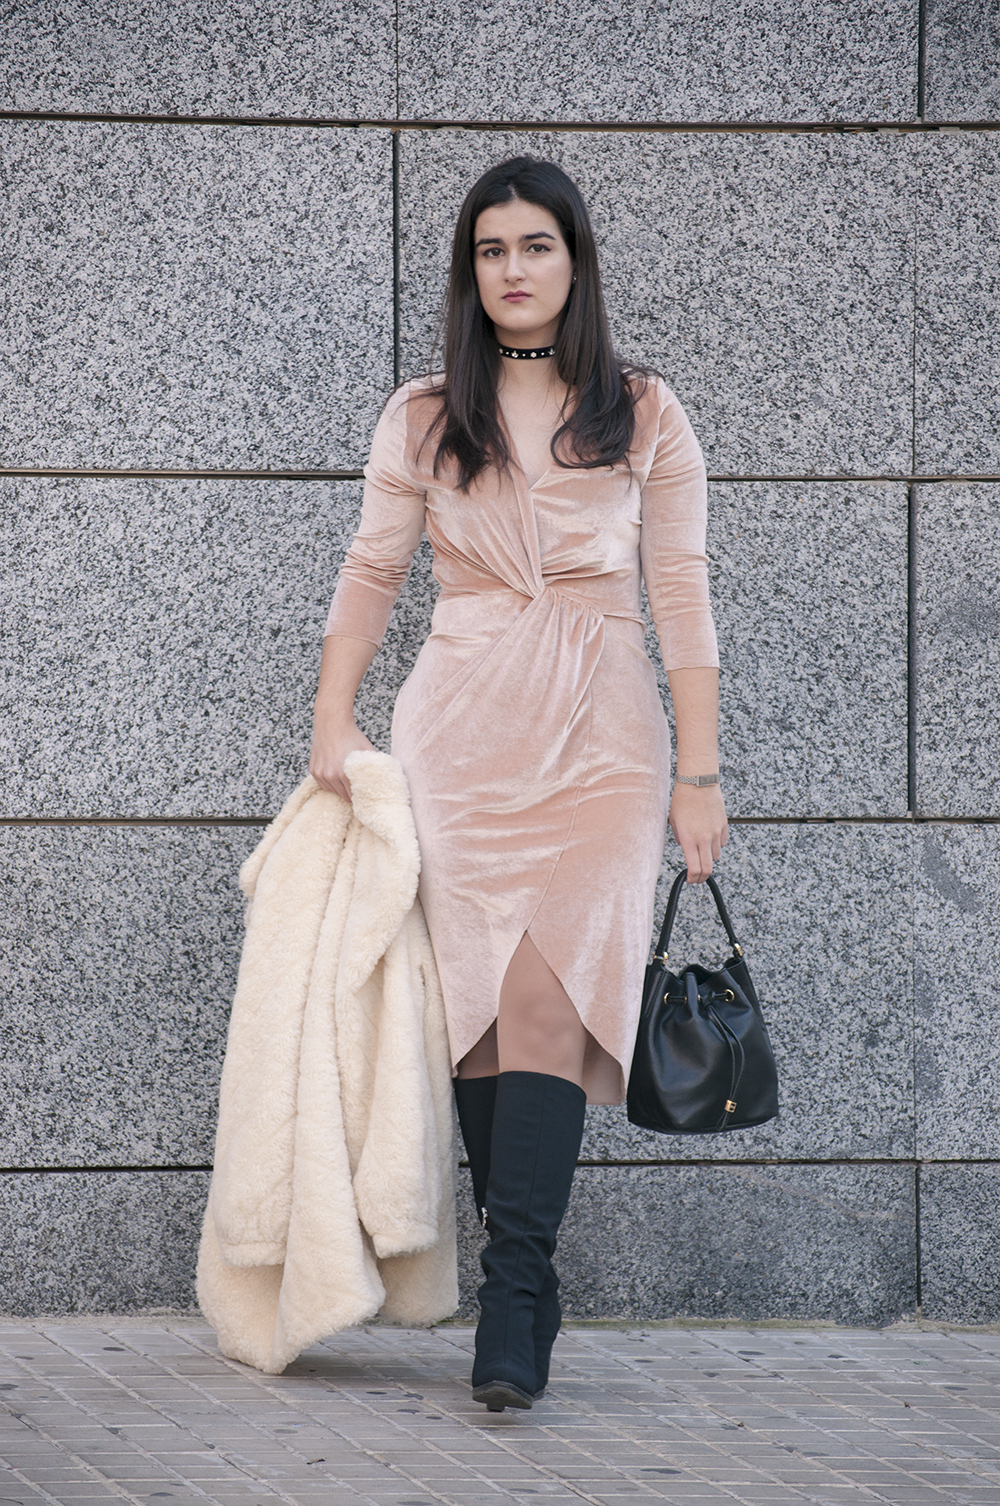 something fashion, spain valencia blogger moda, terciopelo vestido dress velvet pink zara 2017, vintage choker look outfit boots